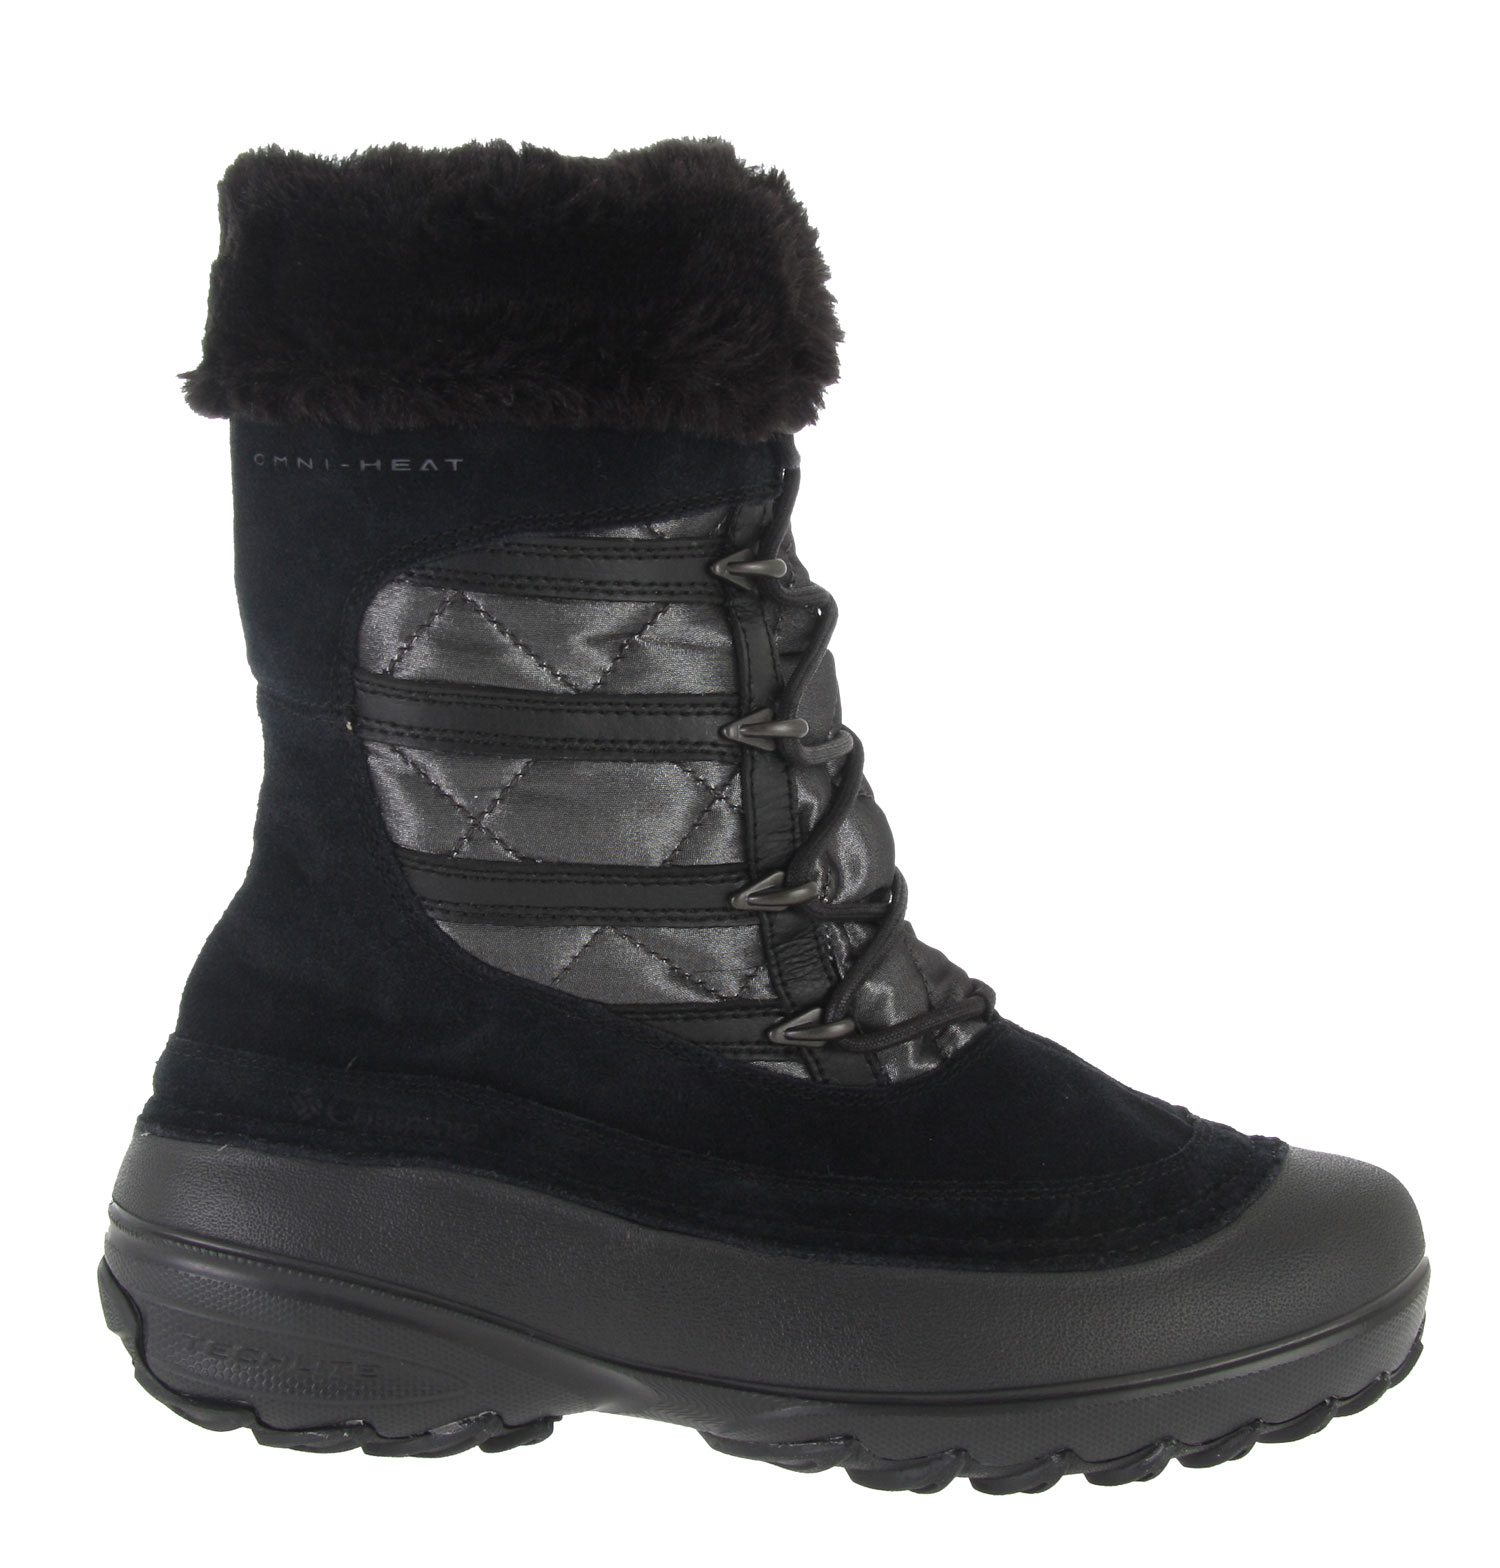 It's not always easy to blend a bit of style into a serious winter boot, but the Slopeside Omni-Heat boot steps up to the challenge. Created from plush, water-resistant quilted textile and rich suede, this cold weather all-rounder features Omni-Shield advanced repellency to block the elements and Omni-Heat technology to reflect your own body heat back into the boot, making sure you stay dry and warm not matter where your winter excursions take you. The Techlite molded shell is both lightweight and flexible for easy mobility; inside, a removable EVA footbed pampers feet with cushioned comfort. Underneath, an Omni-Grip lugged outsole with winter-specific traction lets you walk tall without fear of wipeouts. Key Features of the Columbia Slopeside Omni Boots: Water-resistant suede leather and textile with Omni-Shield advanced repellency. Omni-Heat technology reflects natural body heat for added warmth 200g Thermolite rated -25/-32C Removable, anatomically contoured EVA footbed with nylex cover Molded nylon shank provides torsional rigidity and support Techlite molded material provides cushioning and protection in a lightweight, flexible shell Non-marking Omni-Grip rubber compound outsole for optimal traction Weight: Size 7, 1/2 pair=1lb. 2oz/513g - $65.95